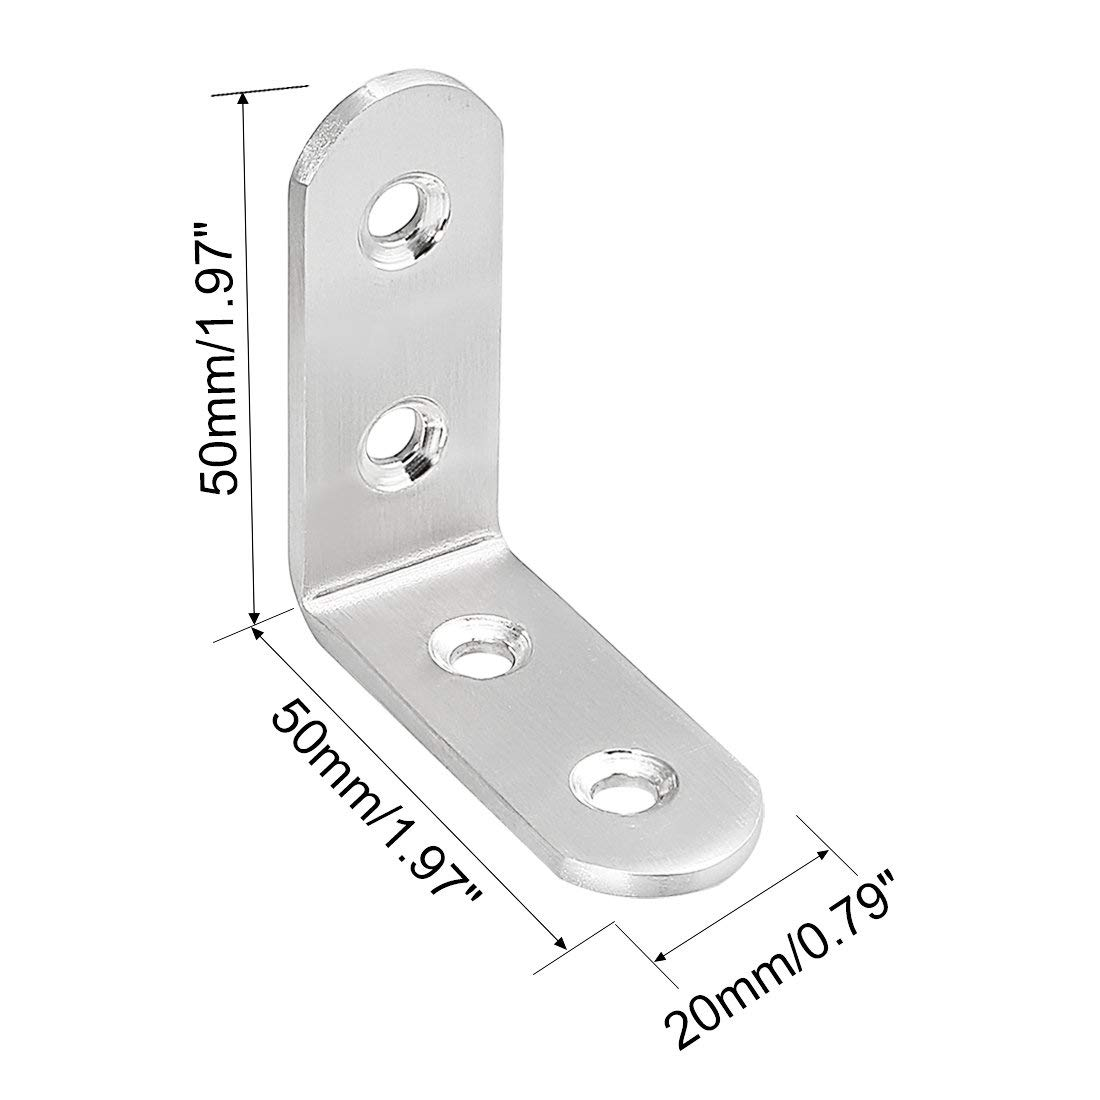 TOUHIA 50x50x3mm Stainless Steel Shelf Corner Brace Right Angle Bracket L Shape Right Angle Support Joint Fastener 10Pcs